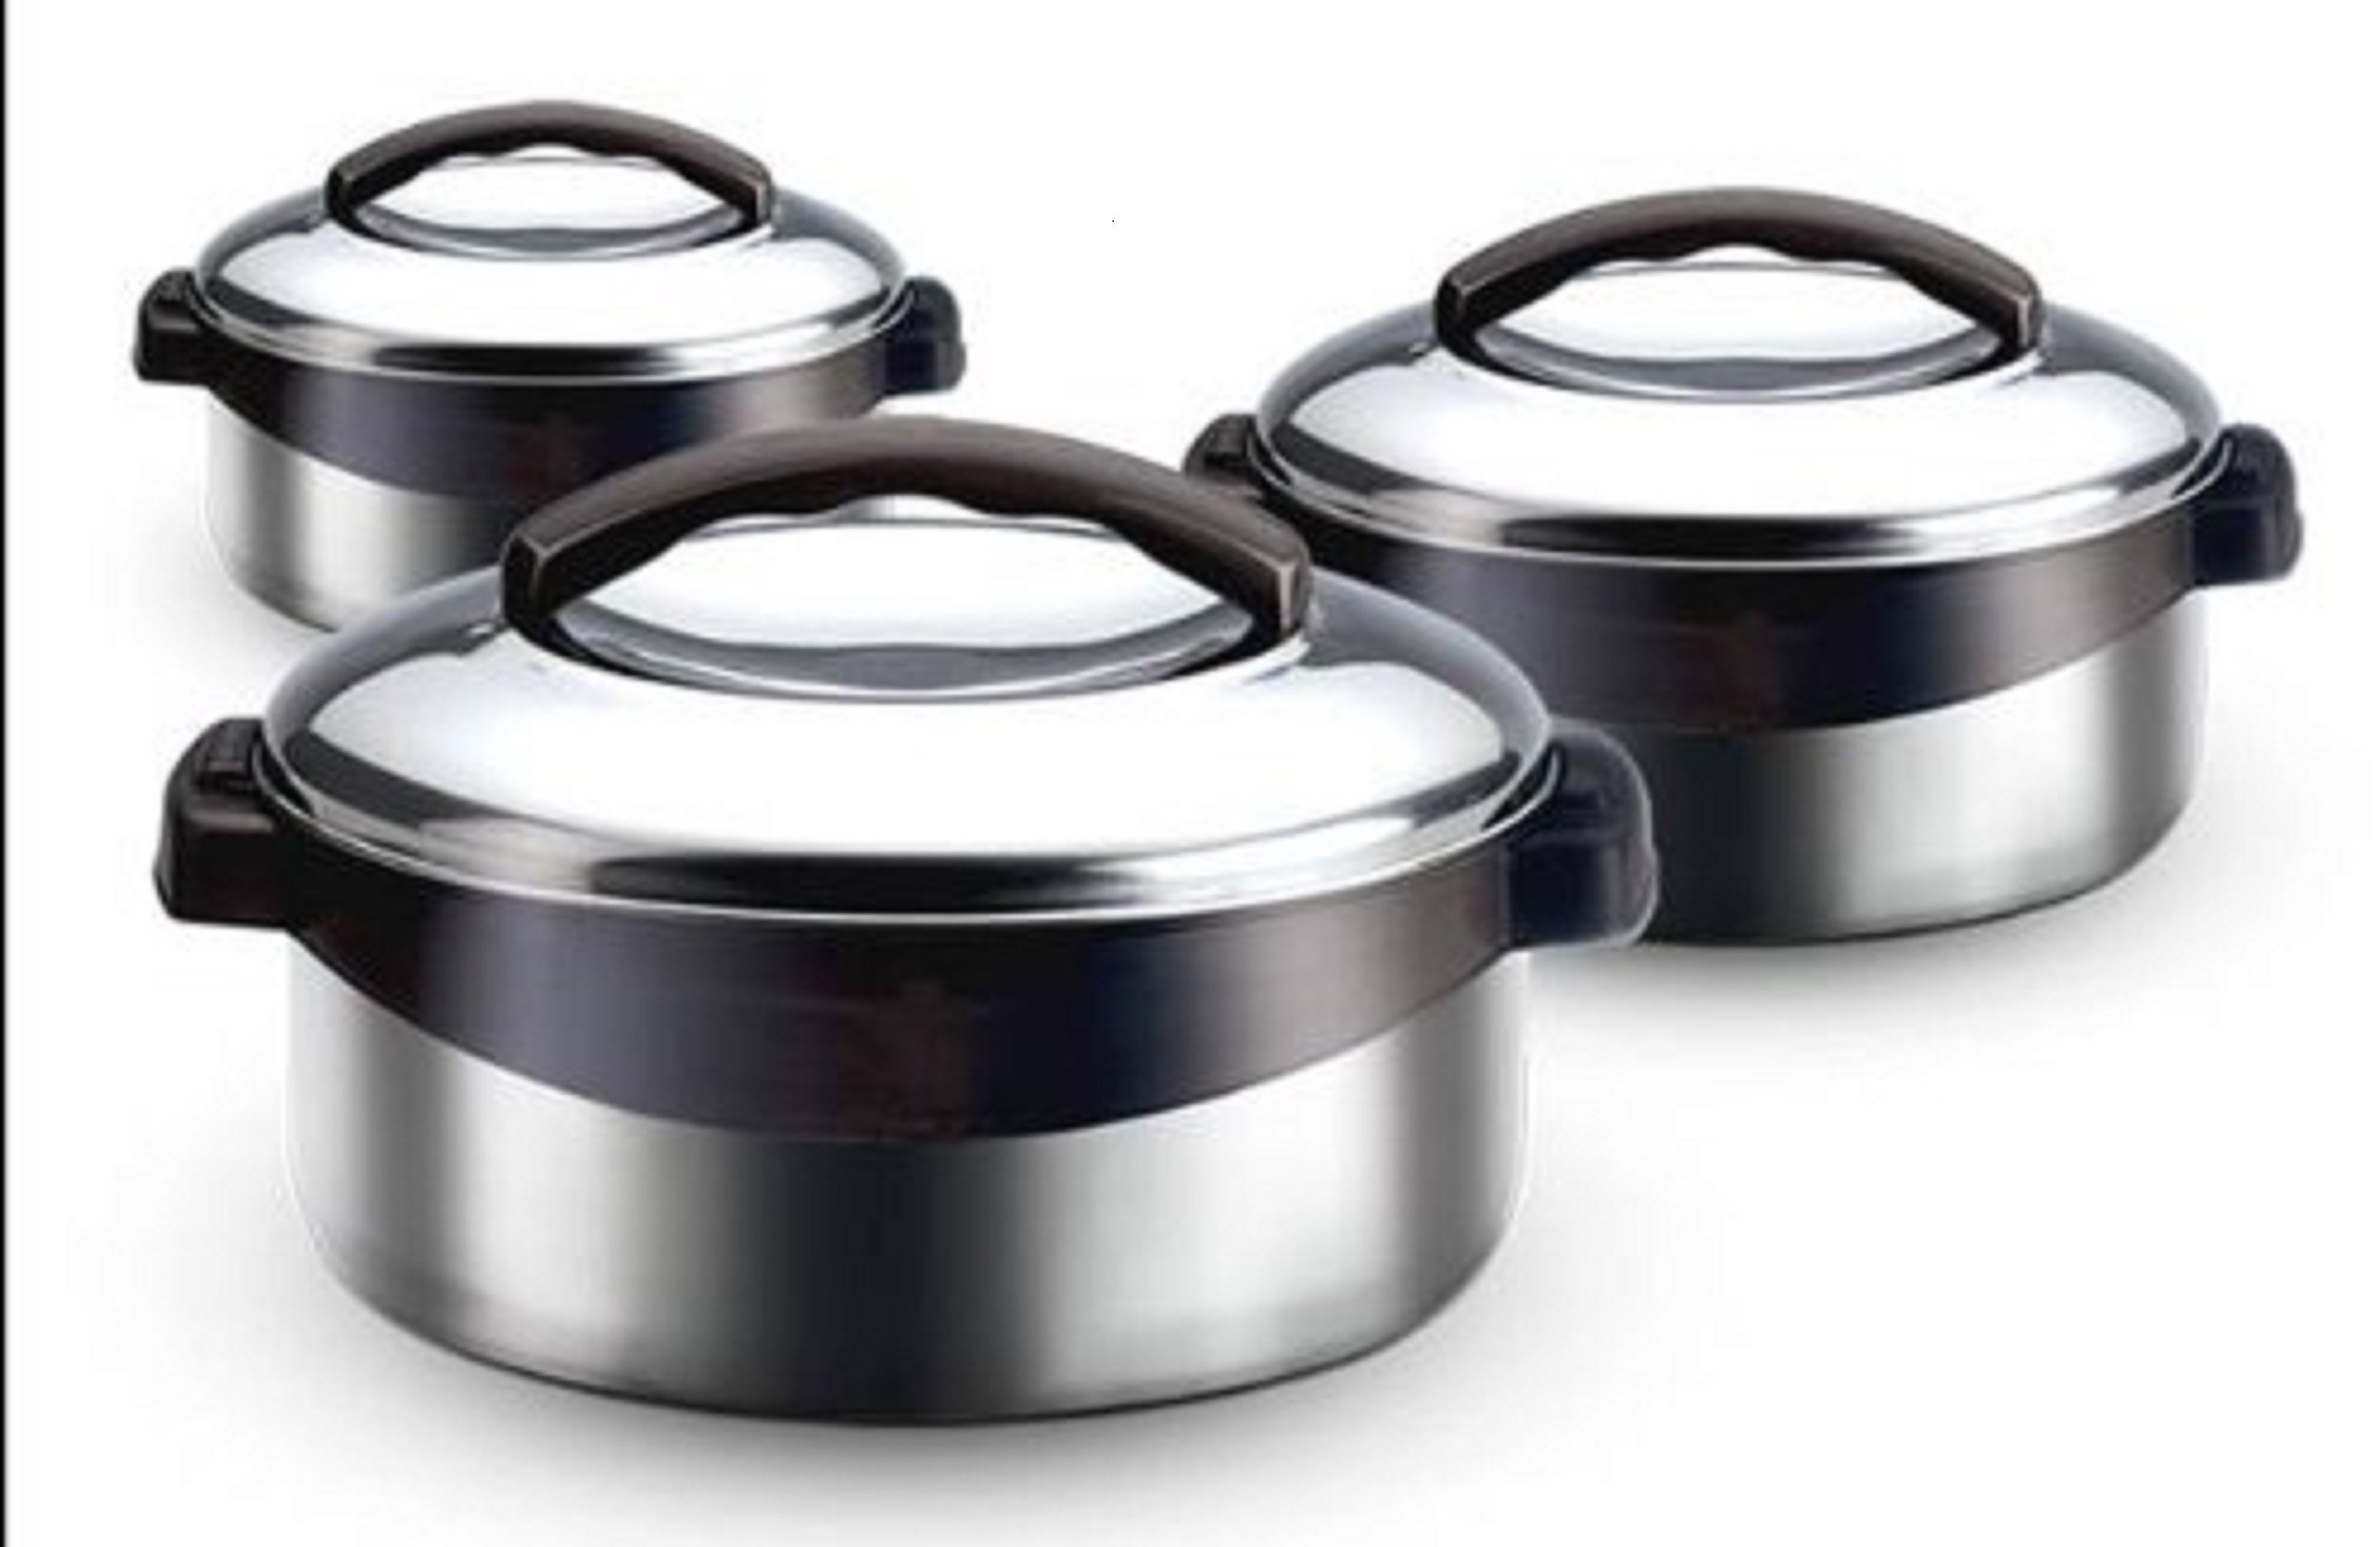 Milton Regent Hot Pot 3 piece Insulated Casserole Gift Set Keep Warm/Cold Upto 4-6 Hours, Stainless Steel